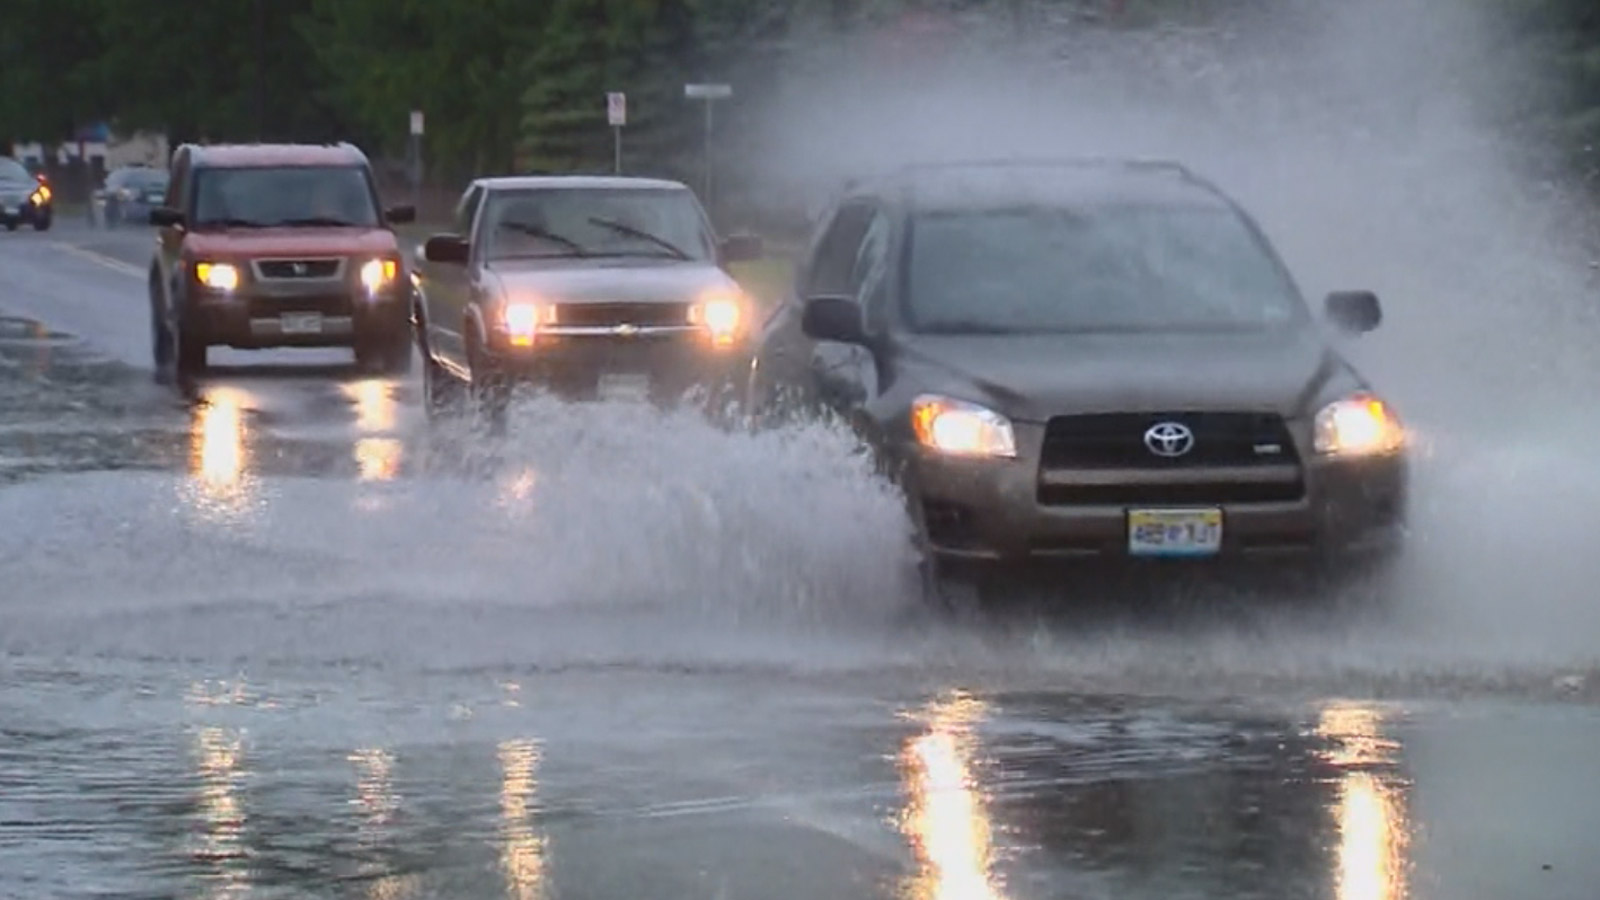 Street flooding in Loveland  on Thursday (credit: CBS)